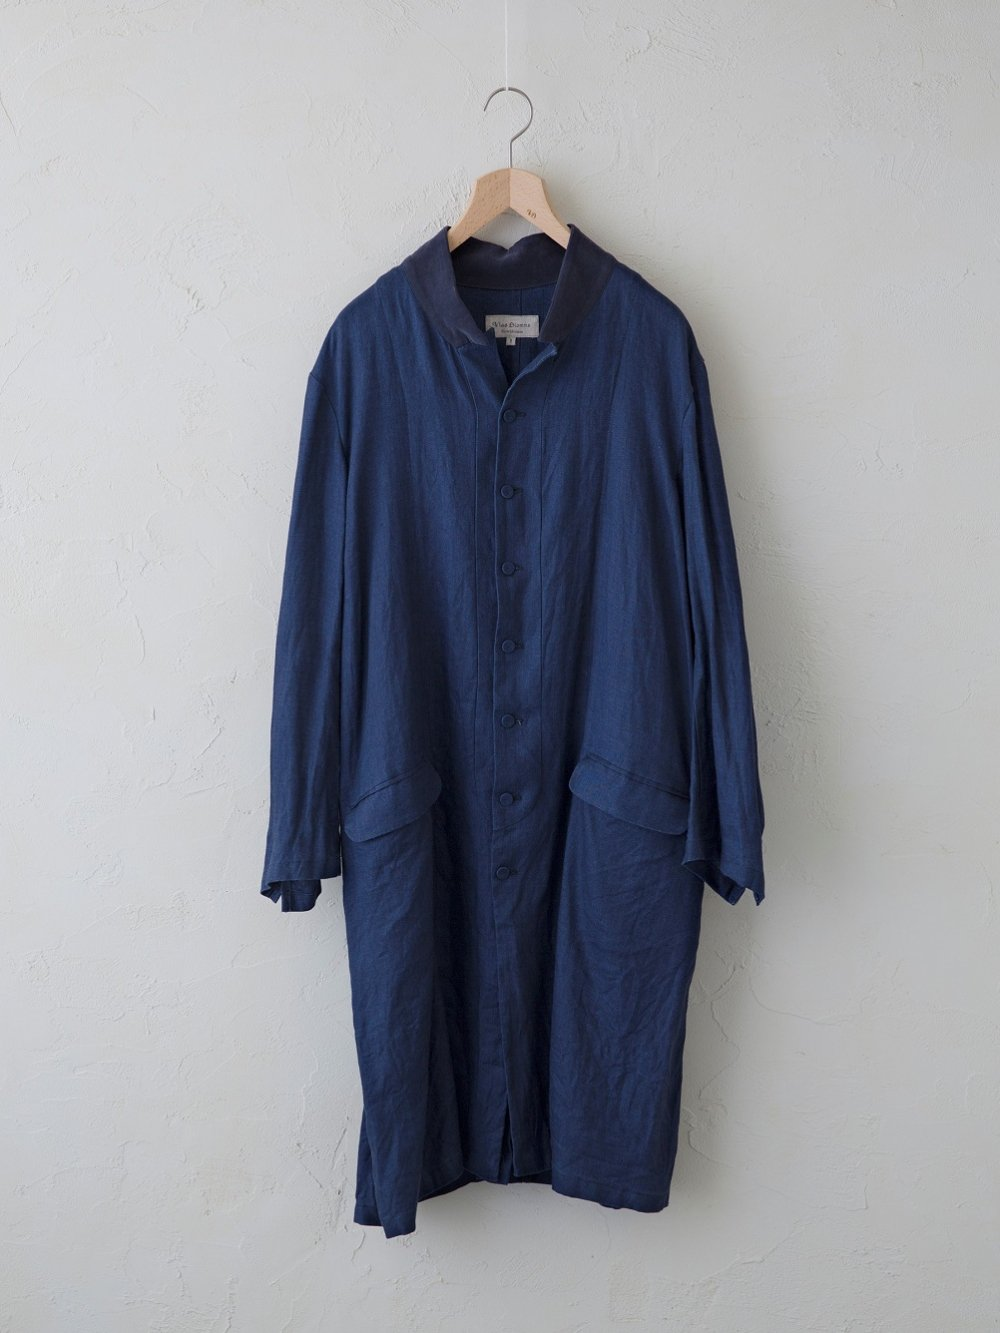 Wither Linen Twill アトリエコート(Ladies'&Men's)